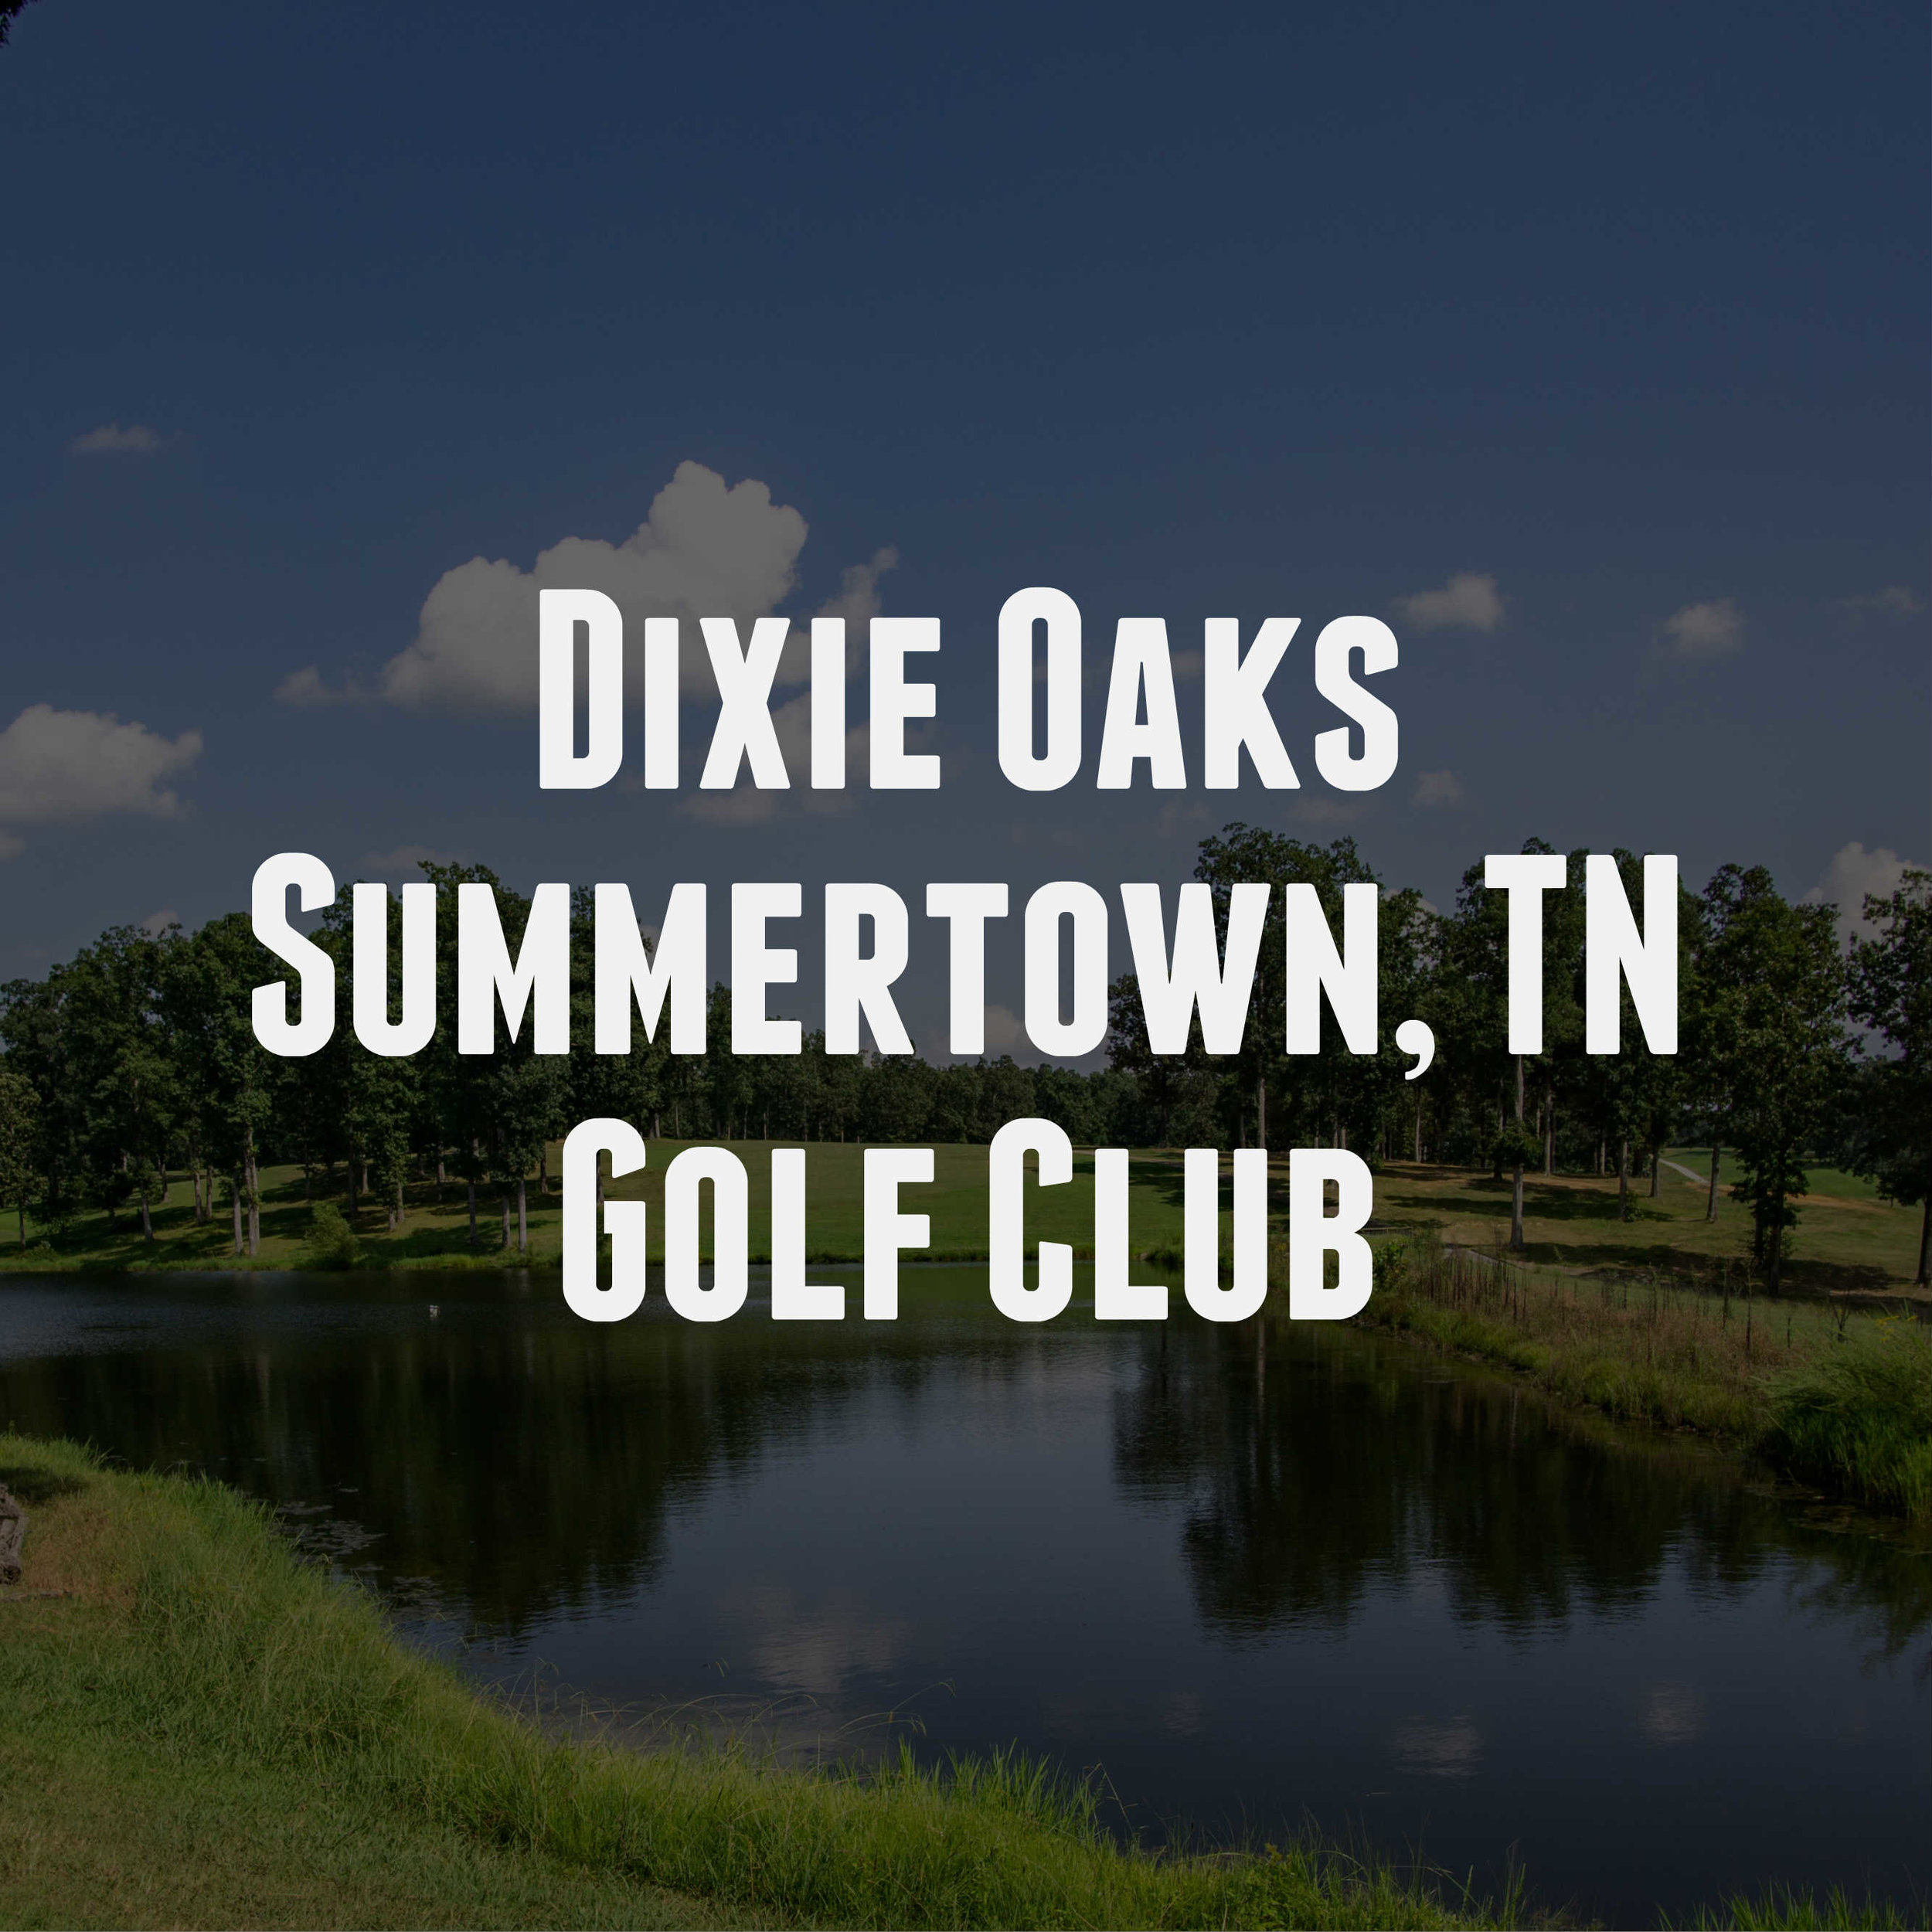 Dixie Oaks Golf Club Summertown TN Real Estate Photographer Pro -6.jpg